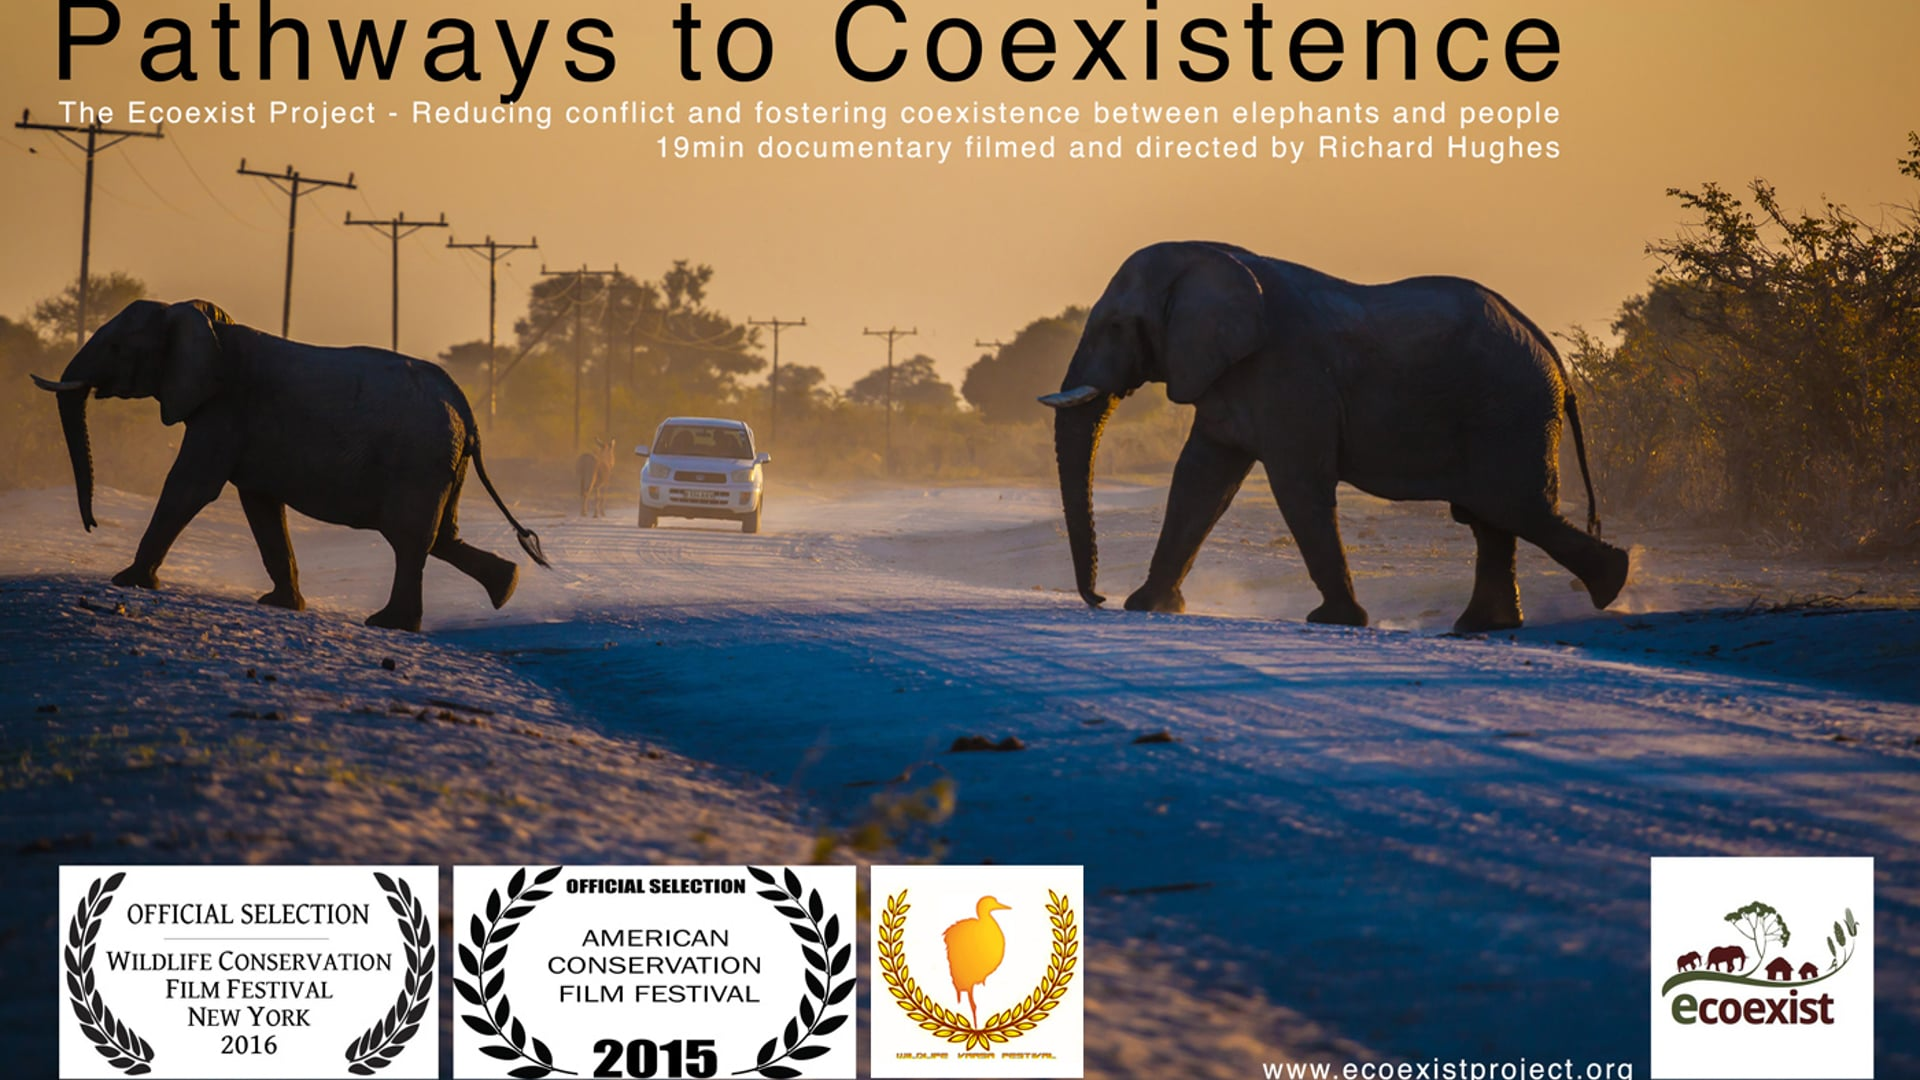 """""""The Ecoexist Project: Pathways to Coexistence"""""""